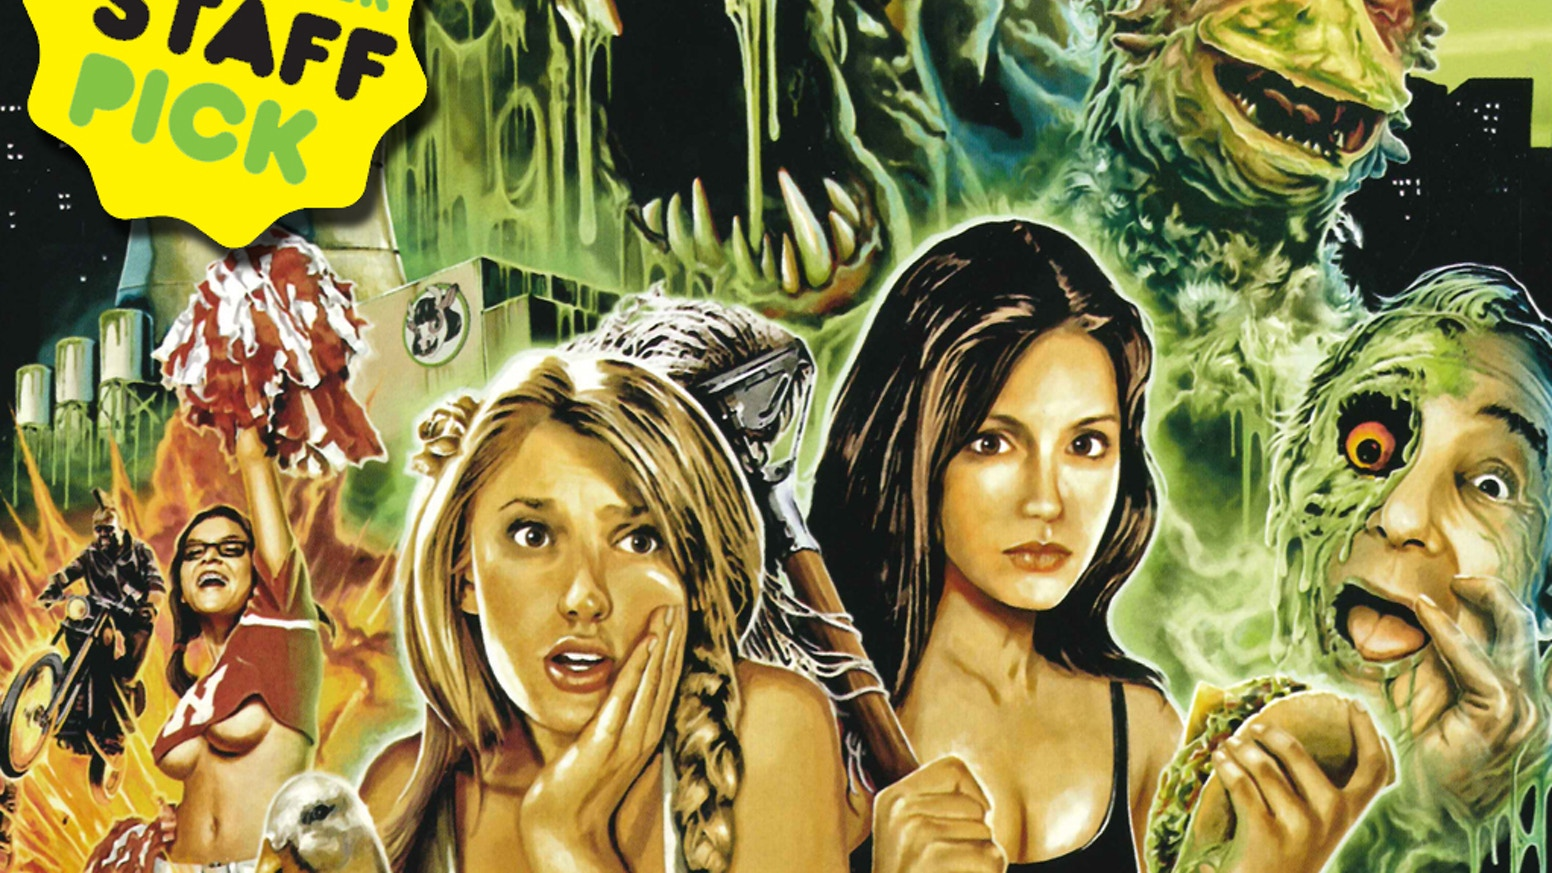 Return to Nuke 'Em High: Volume 2